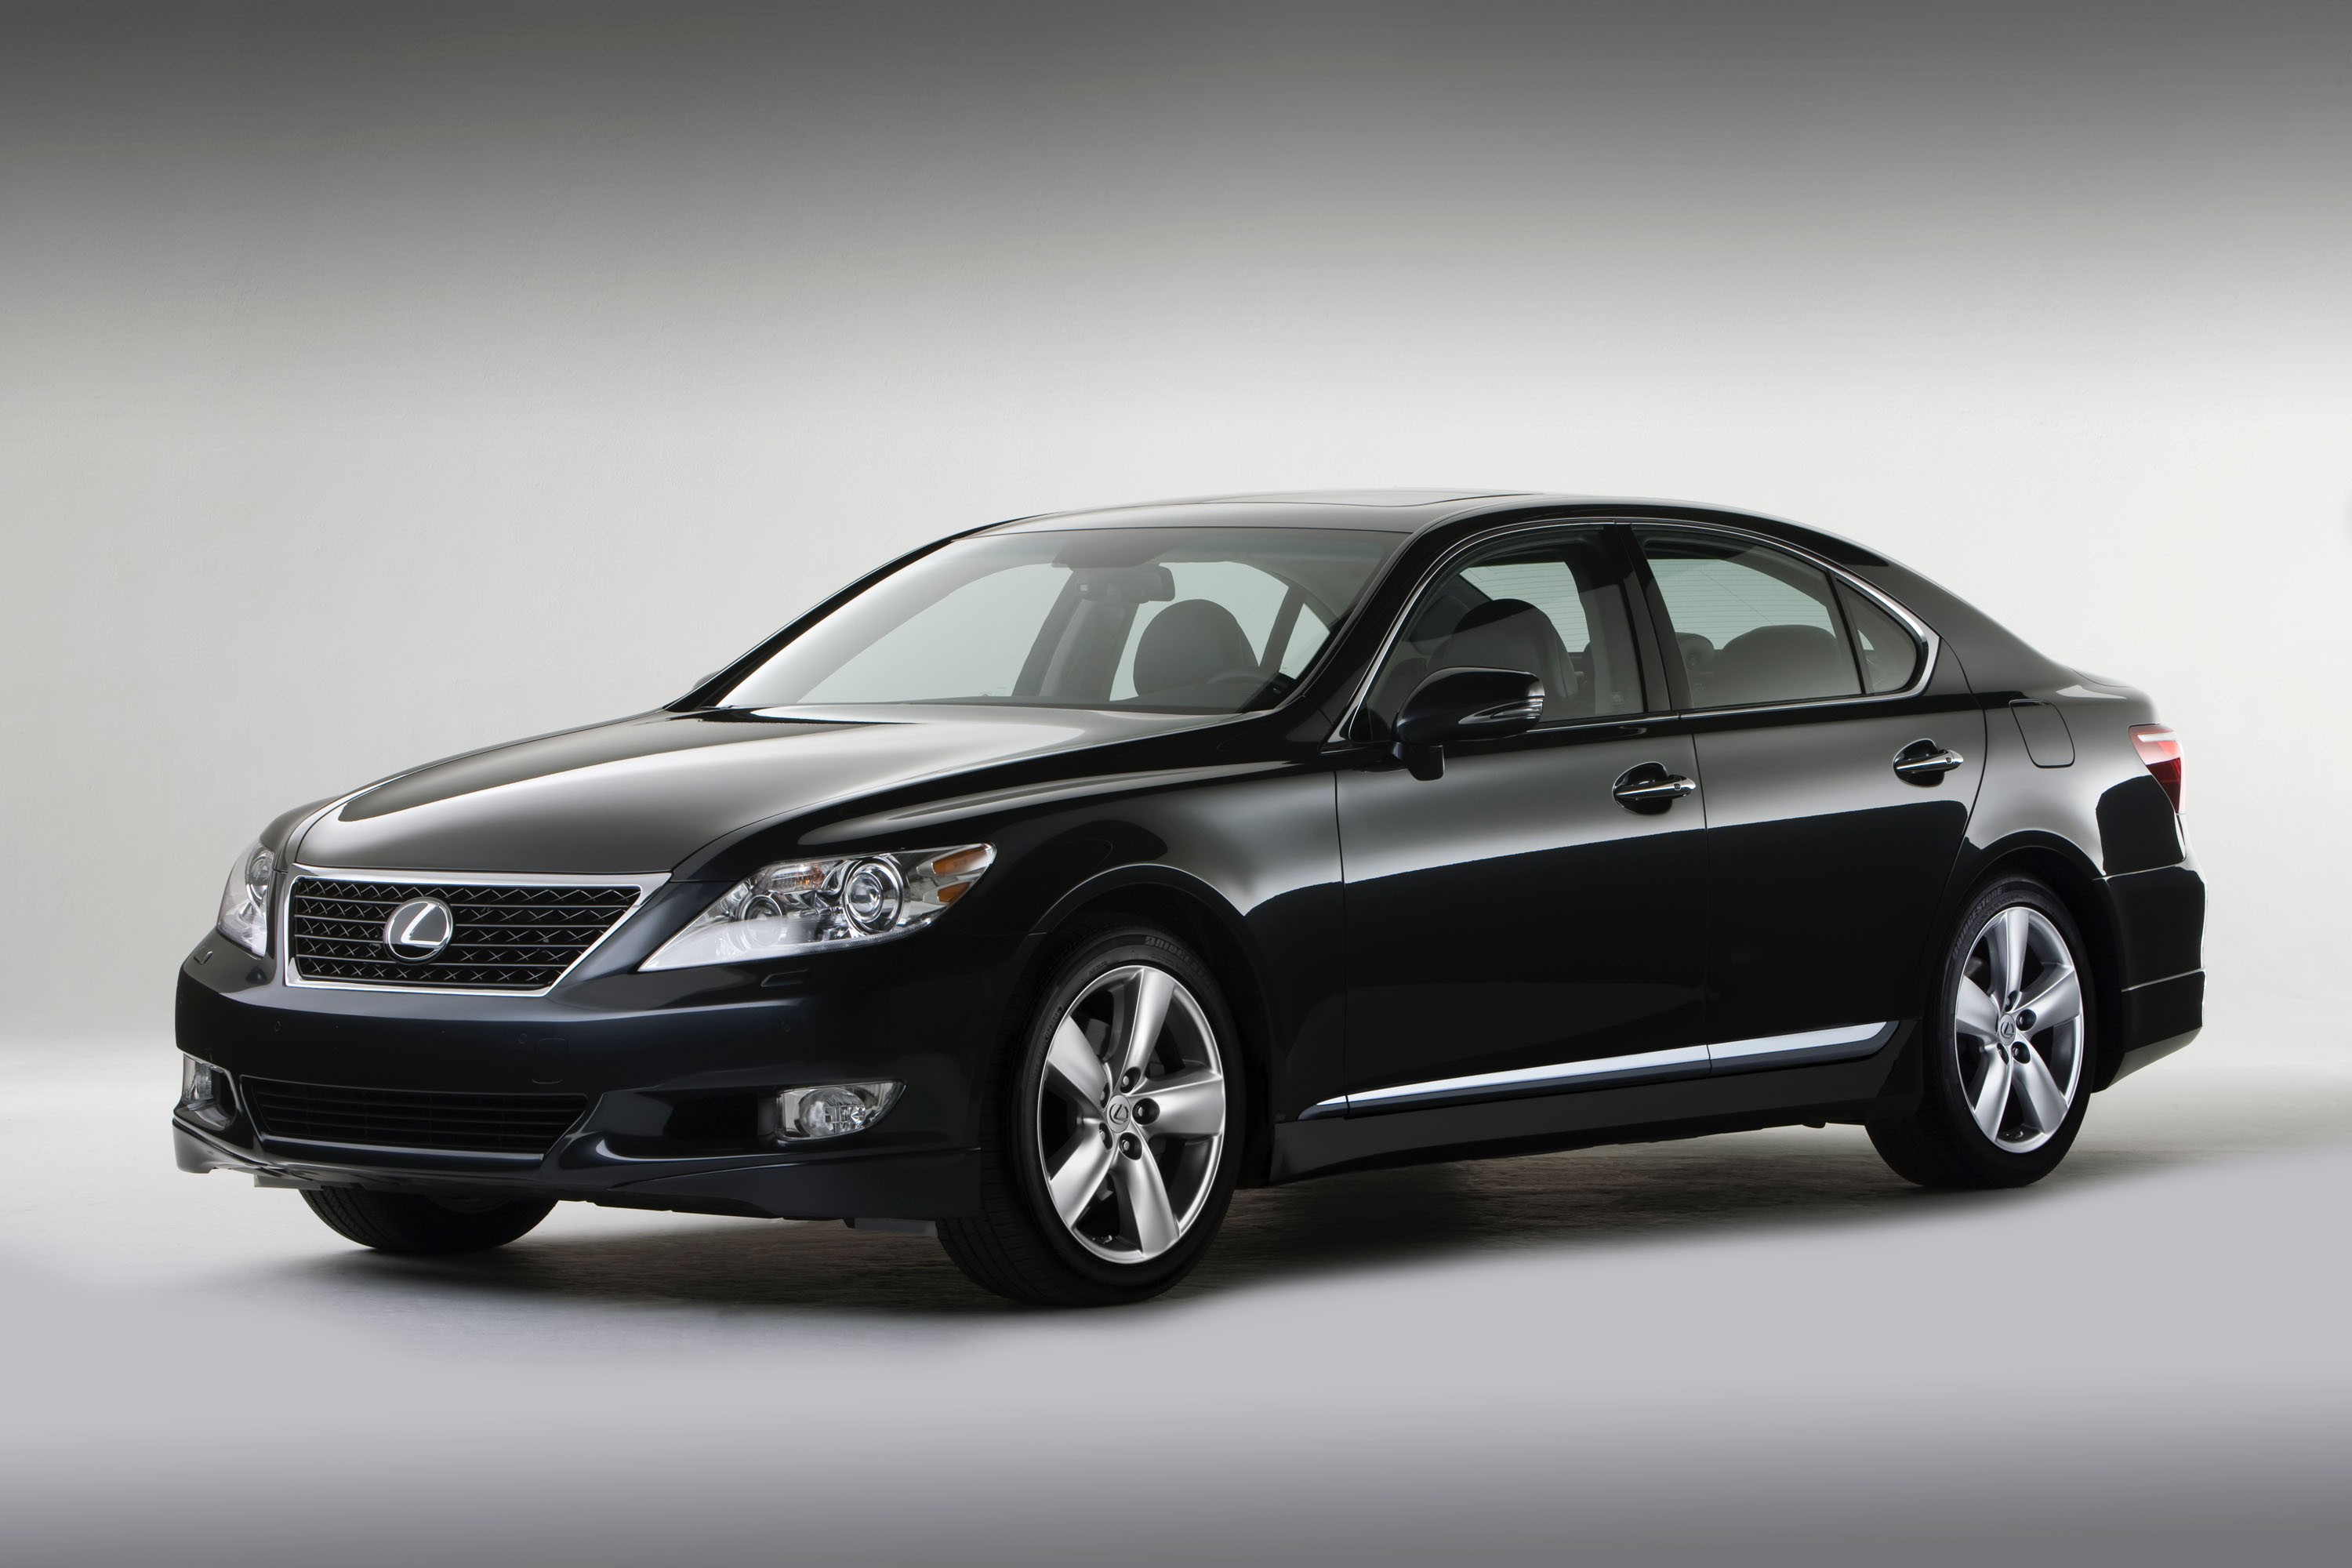 2012 Lexus Ls 460 Preview